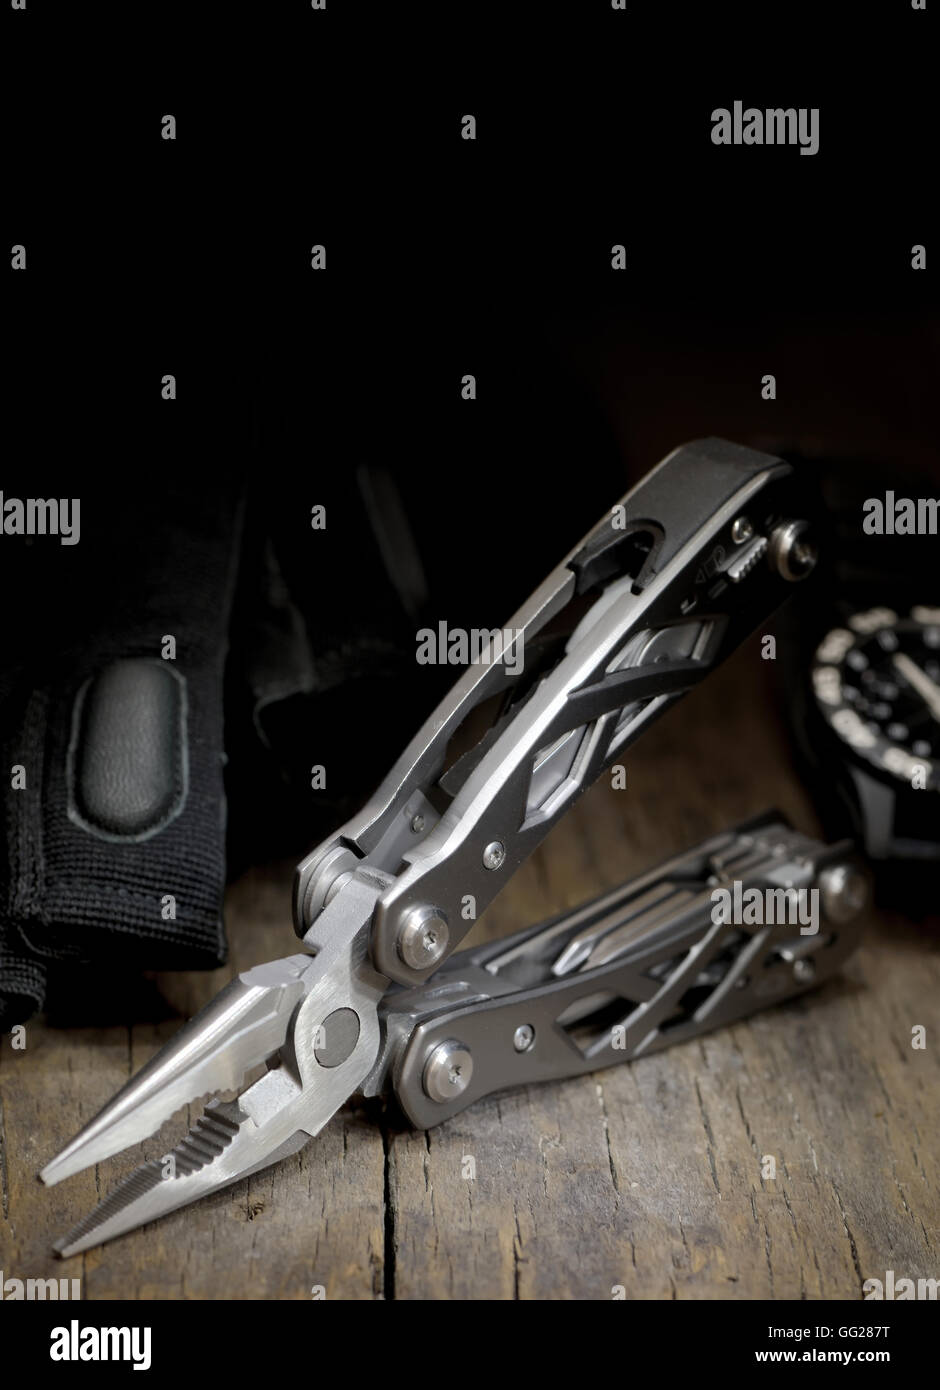 stainless steel multitool isolated on wooden table - Stock Image